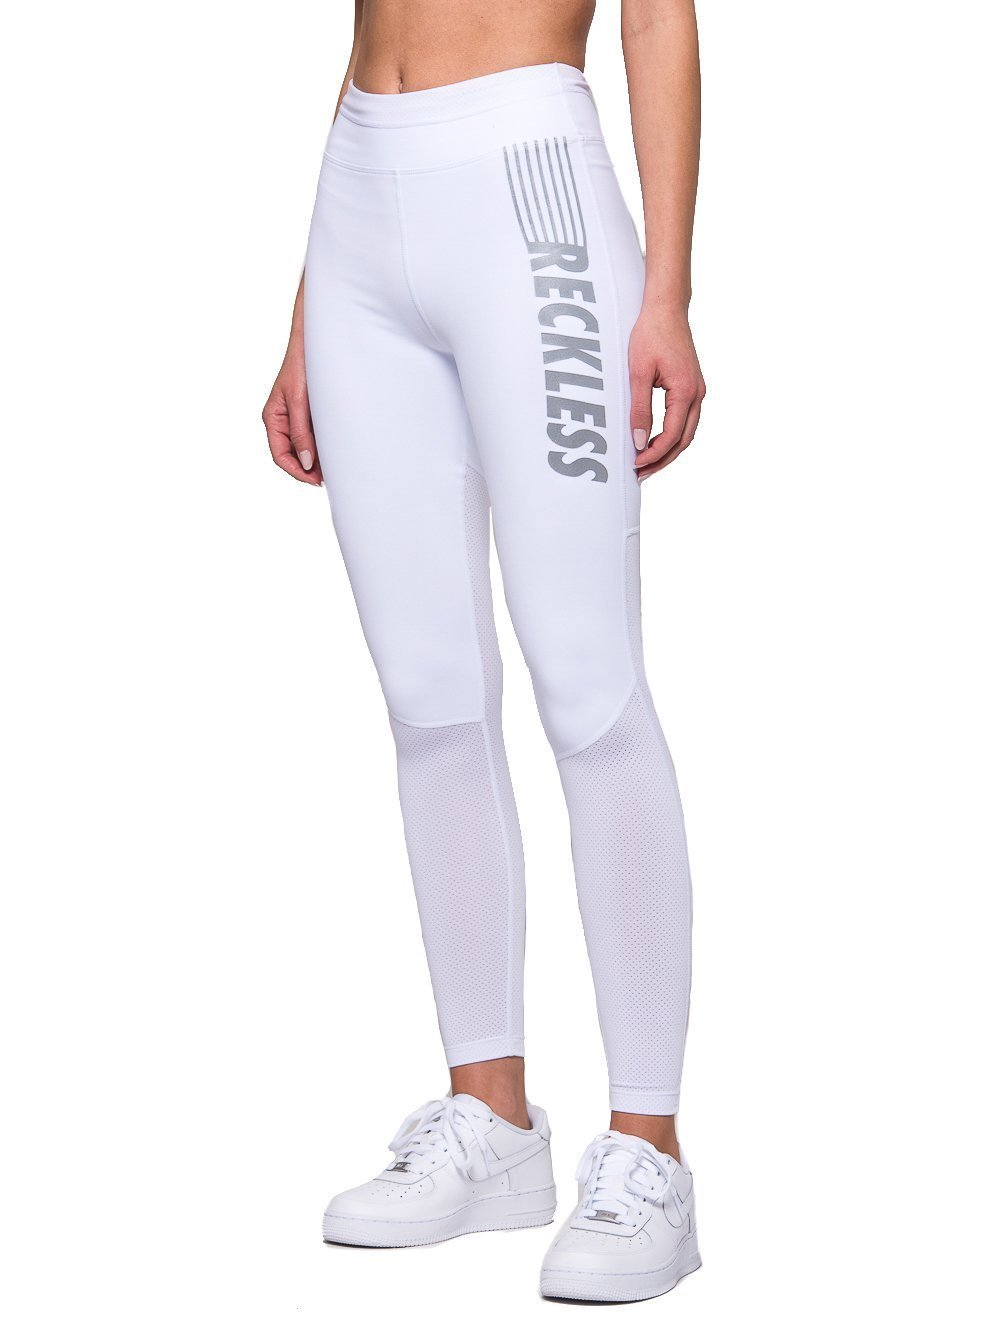 Young Reckless - Erin Leggings - White - XS - Womens - Activewear - Leggings - White